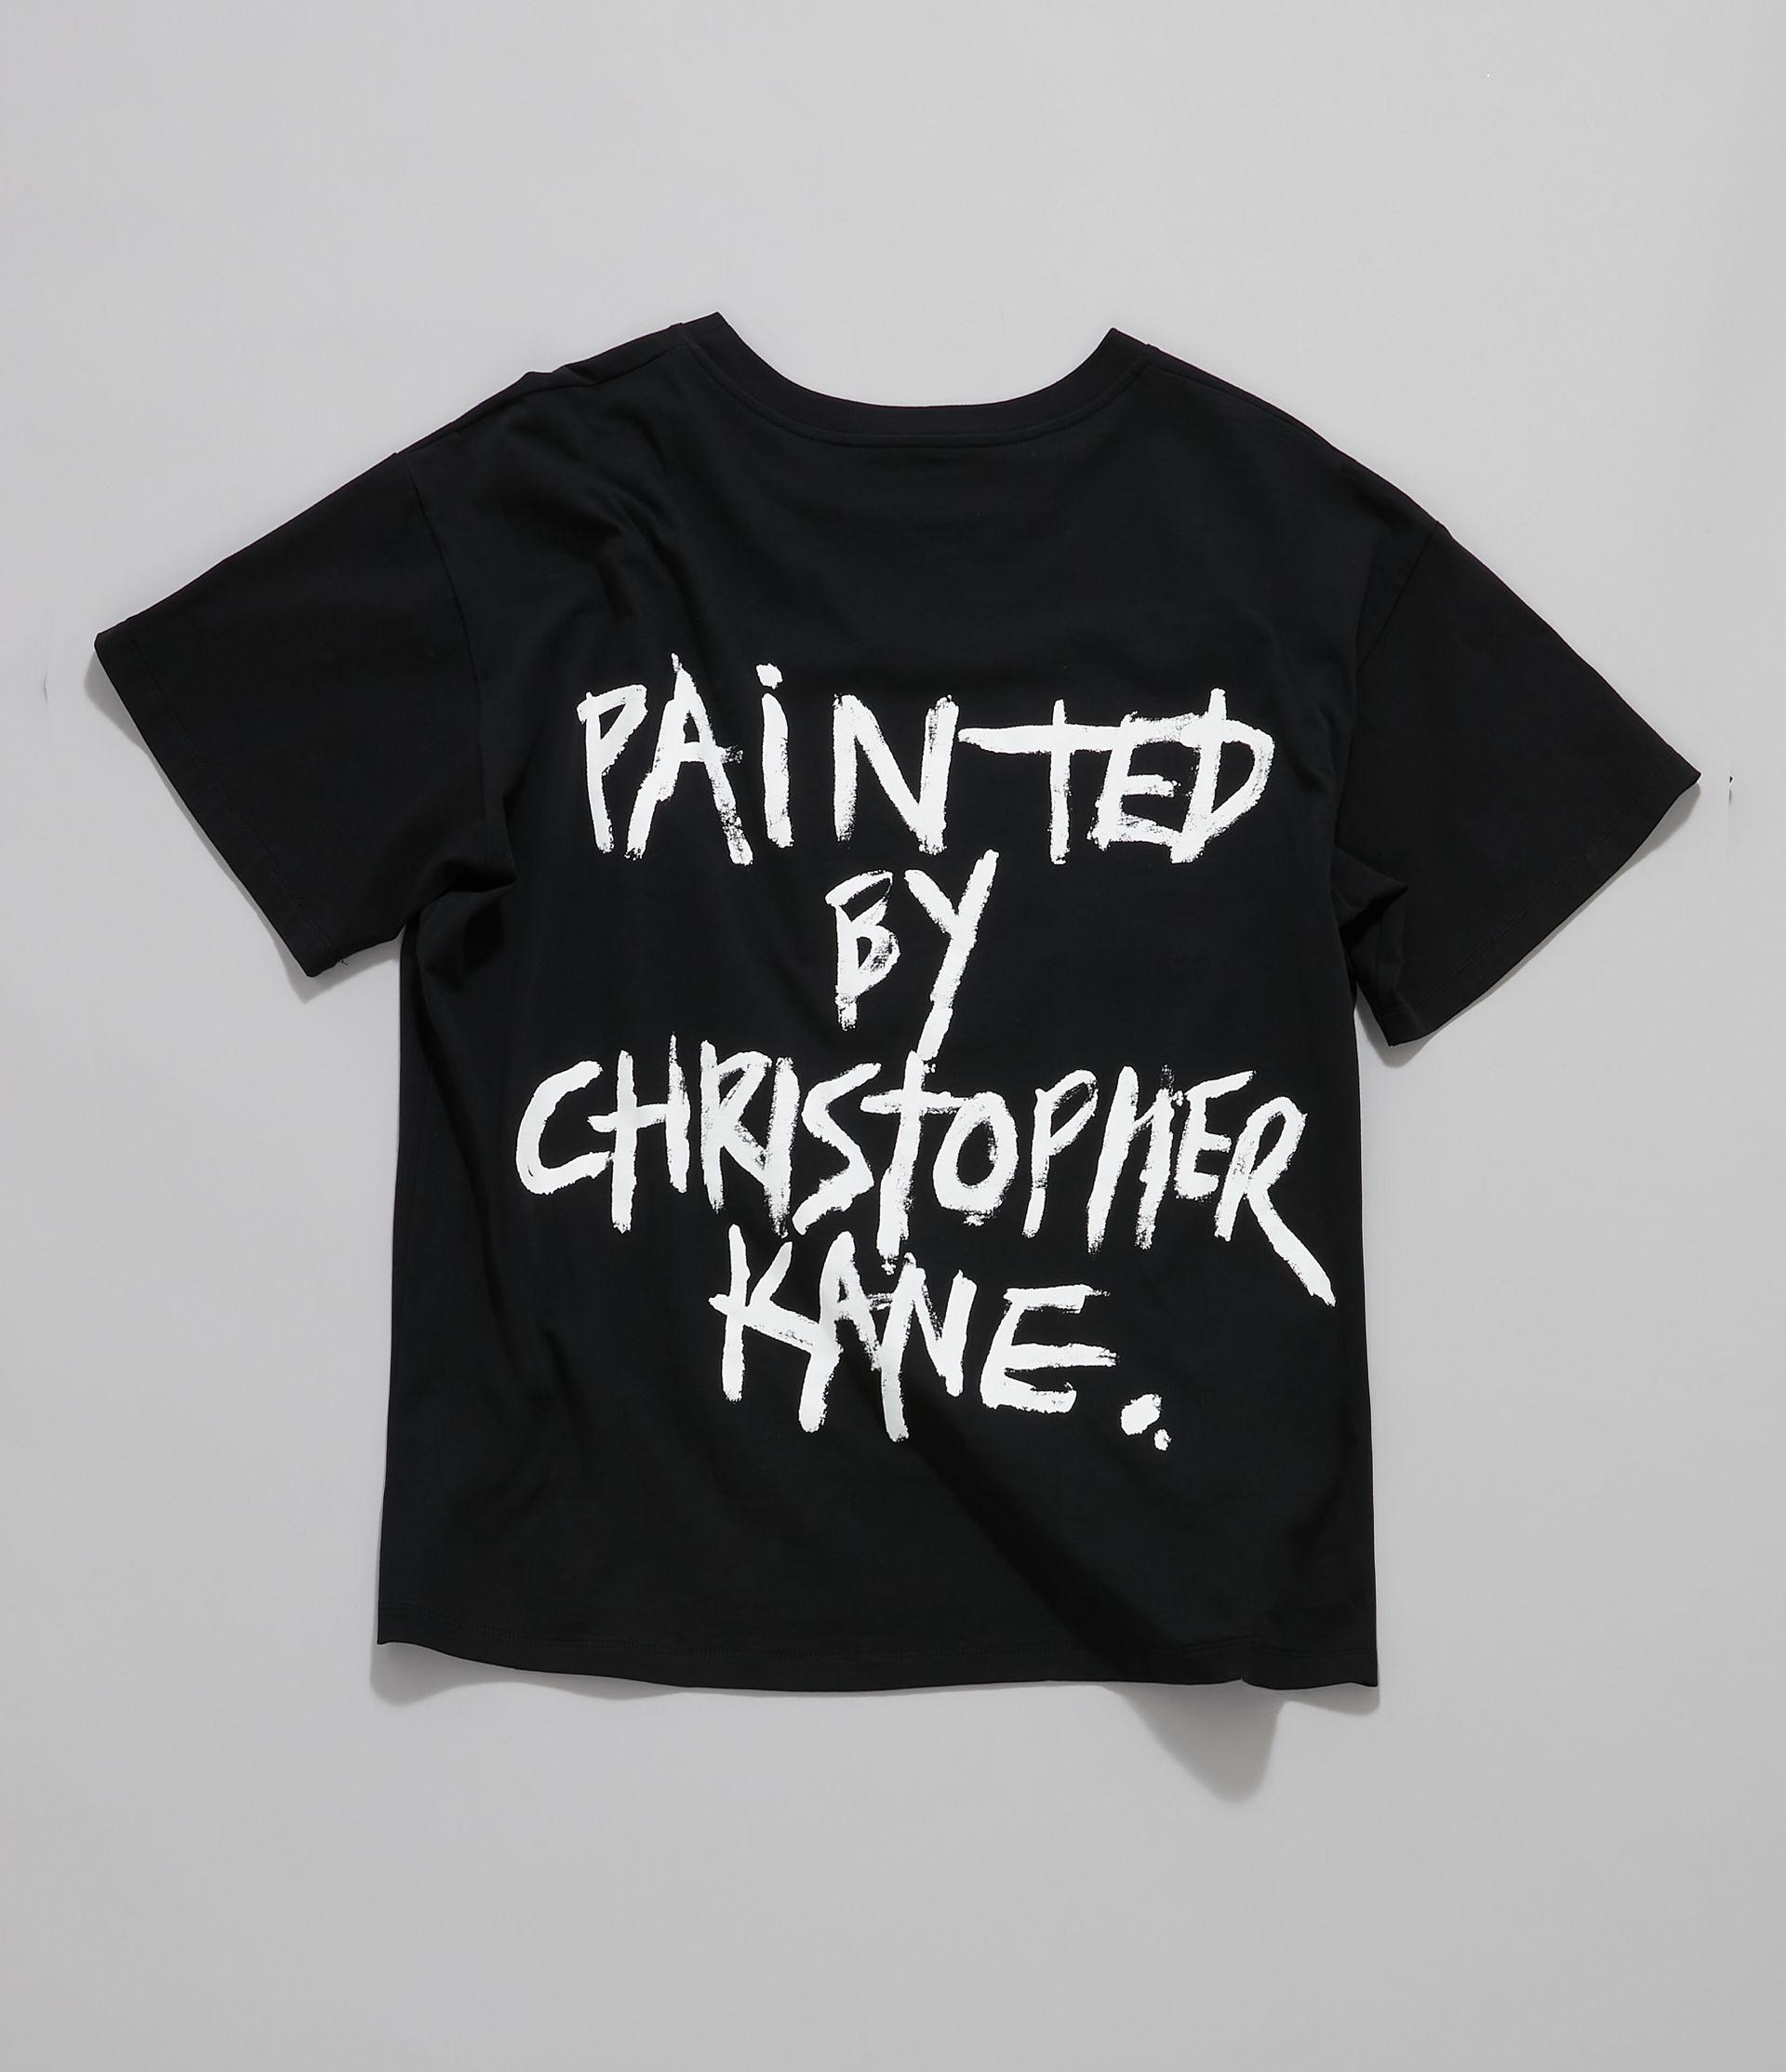 Painted by Christopher Kane t-shirt 6